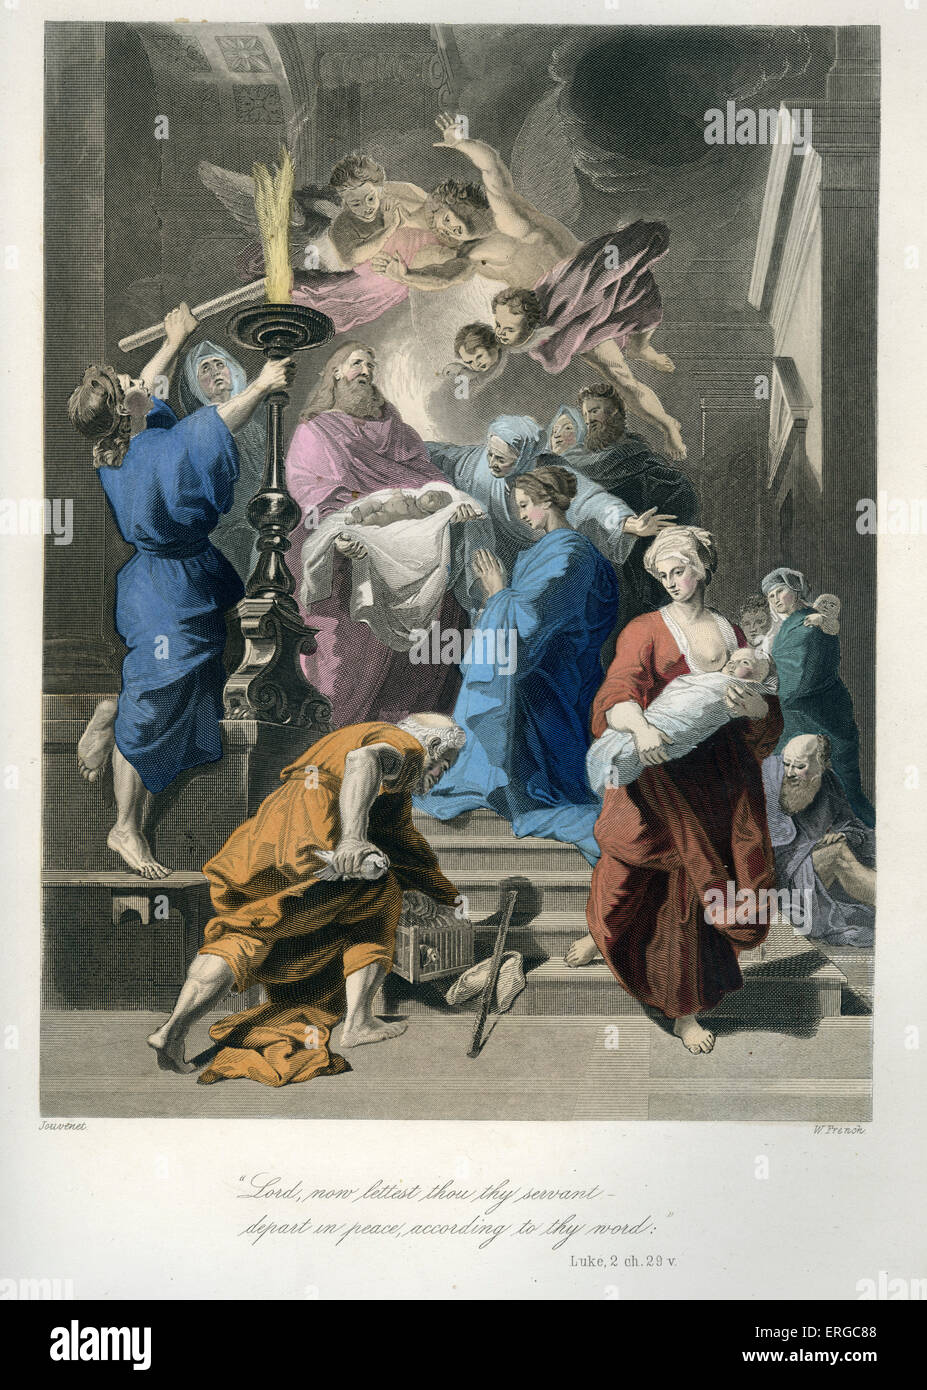 Presentation of Jesus at the Temple, the encounter with Simeon the righteous. Caption reads: ' Lord, now lettest - Stock Image